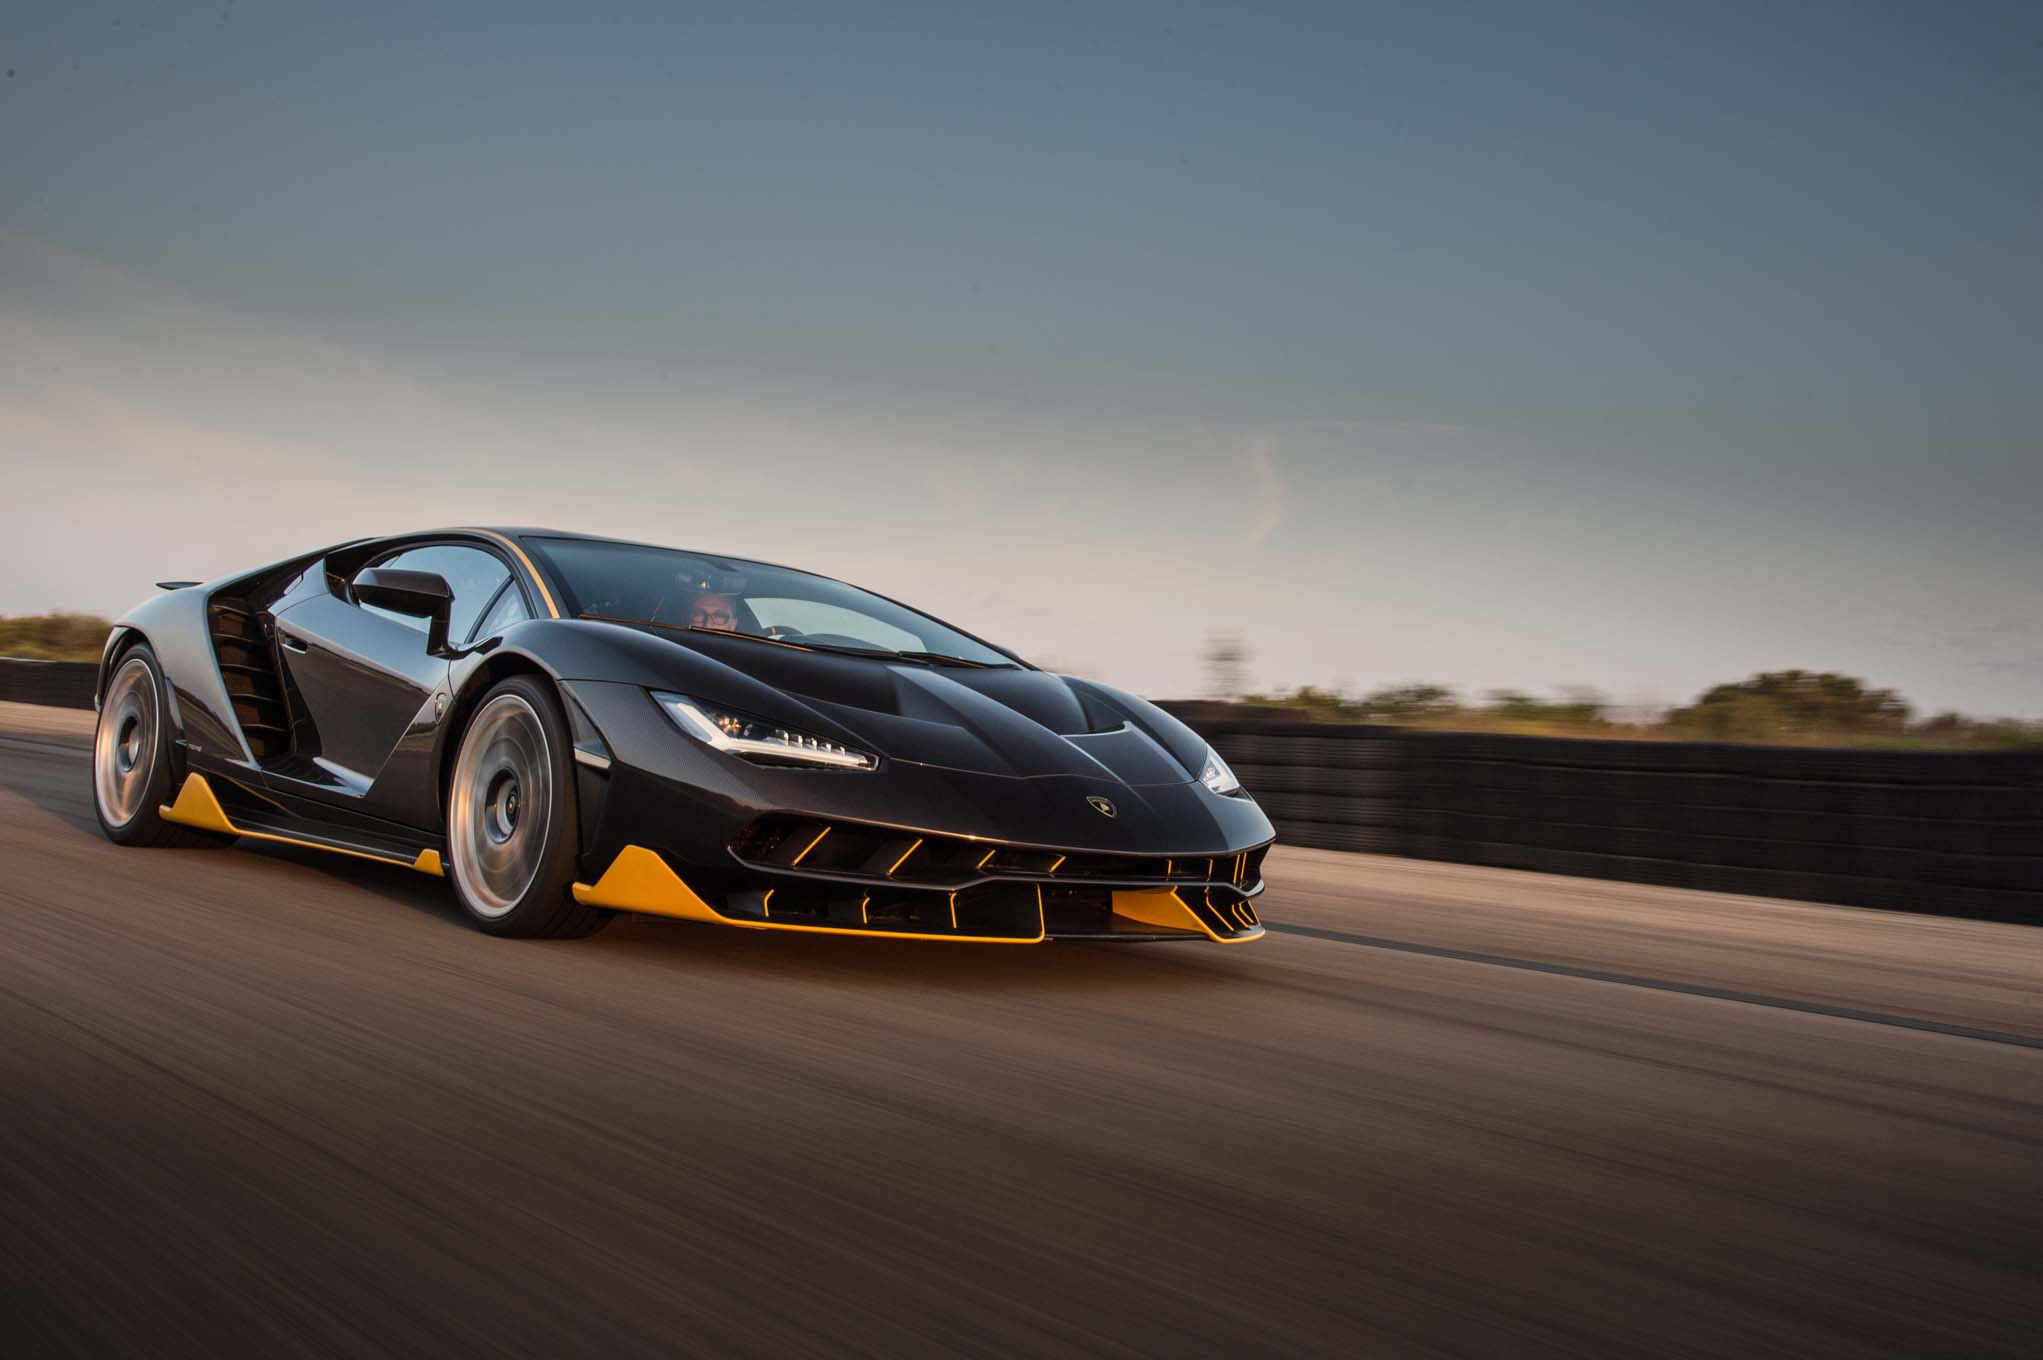 Lamborghini Centenario LP 770 4 front three quarter in motion 25